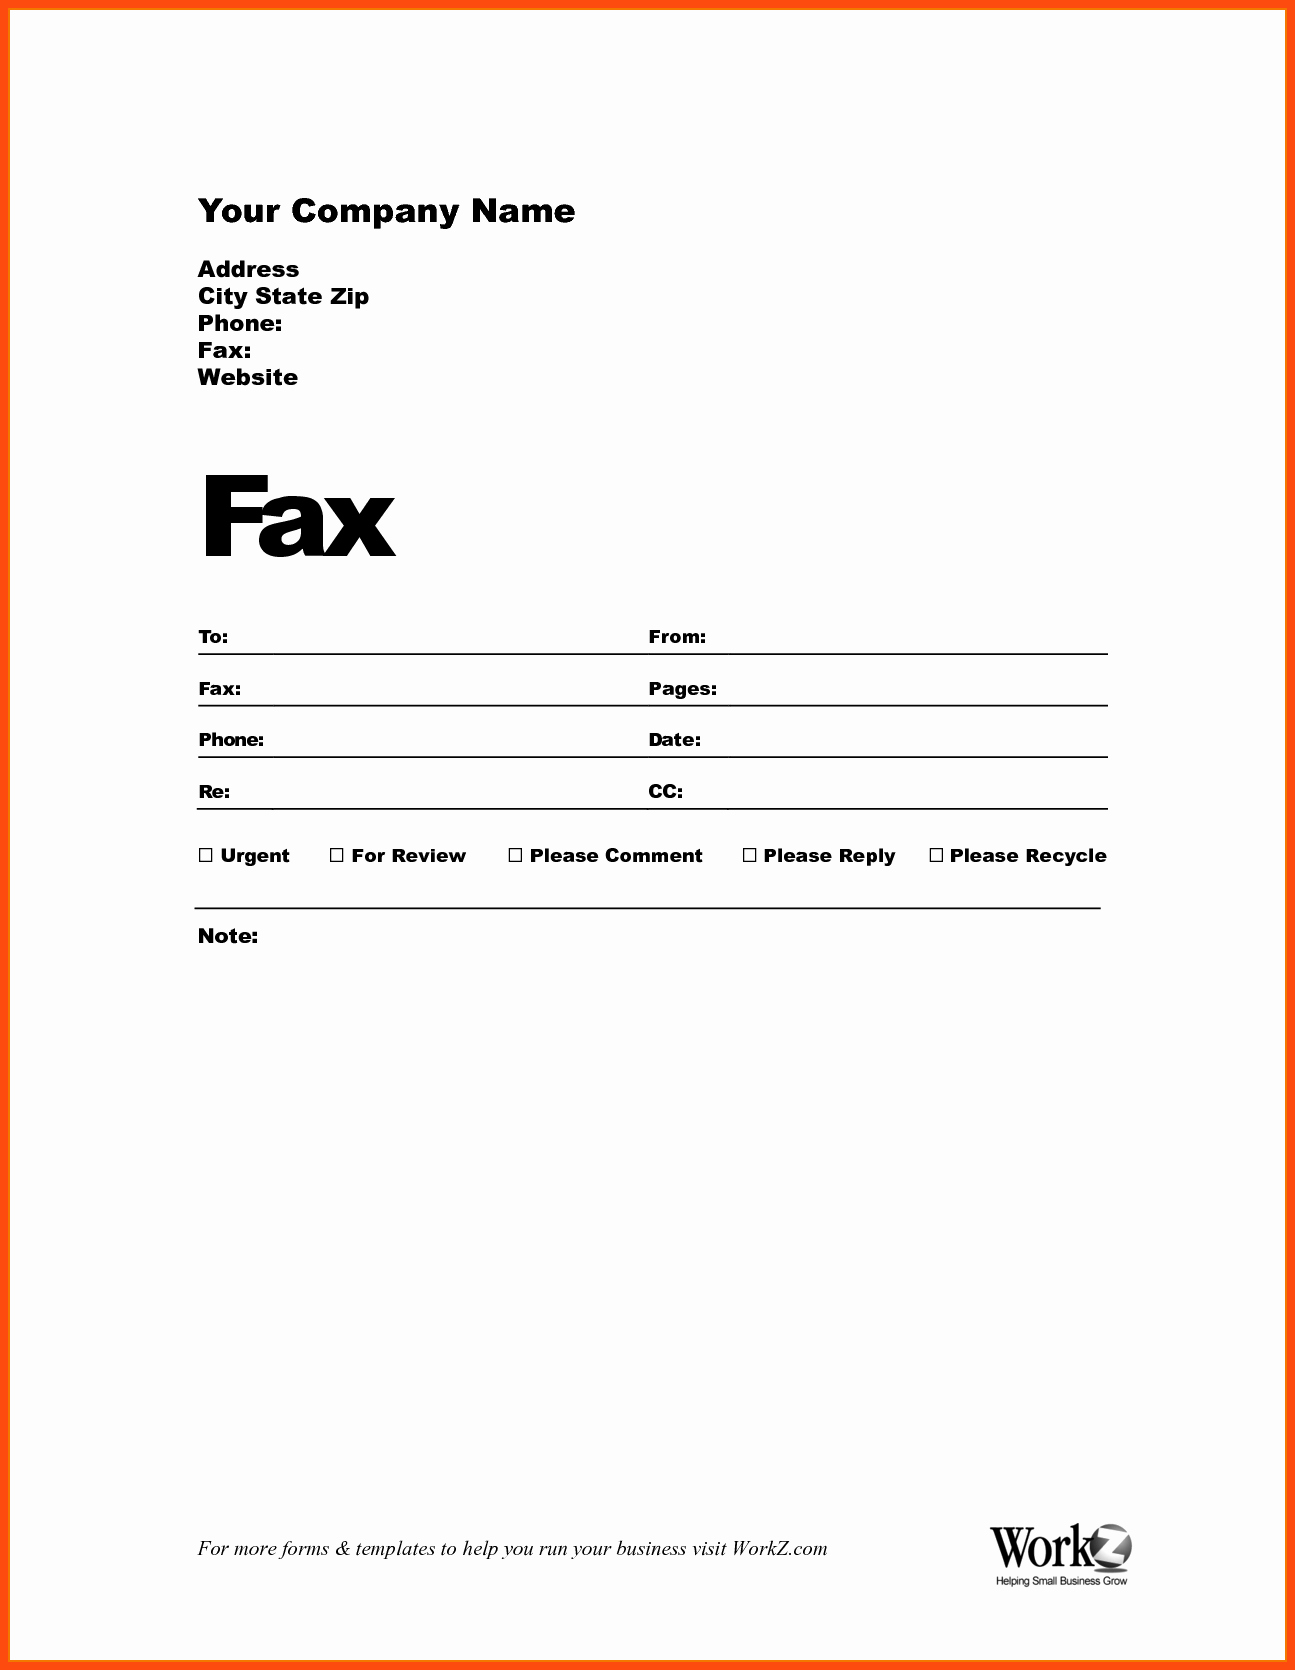 Make A Fax Cover Sheet Best Of How to Fill Out A Fax Cover Sheet